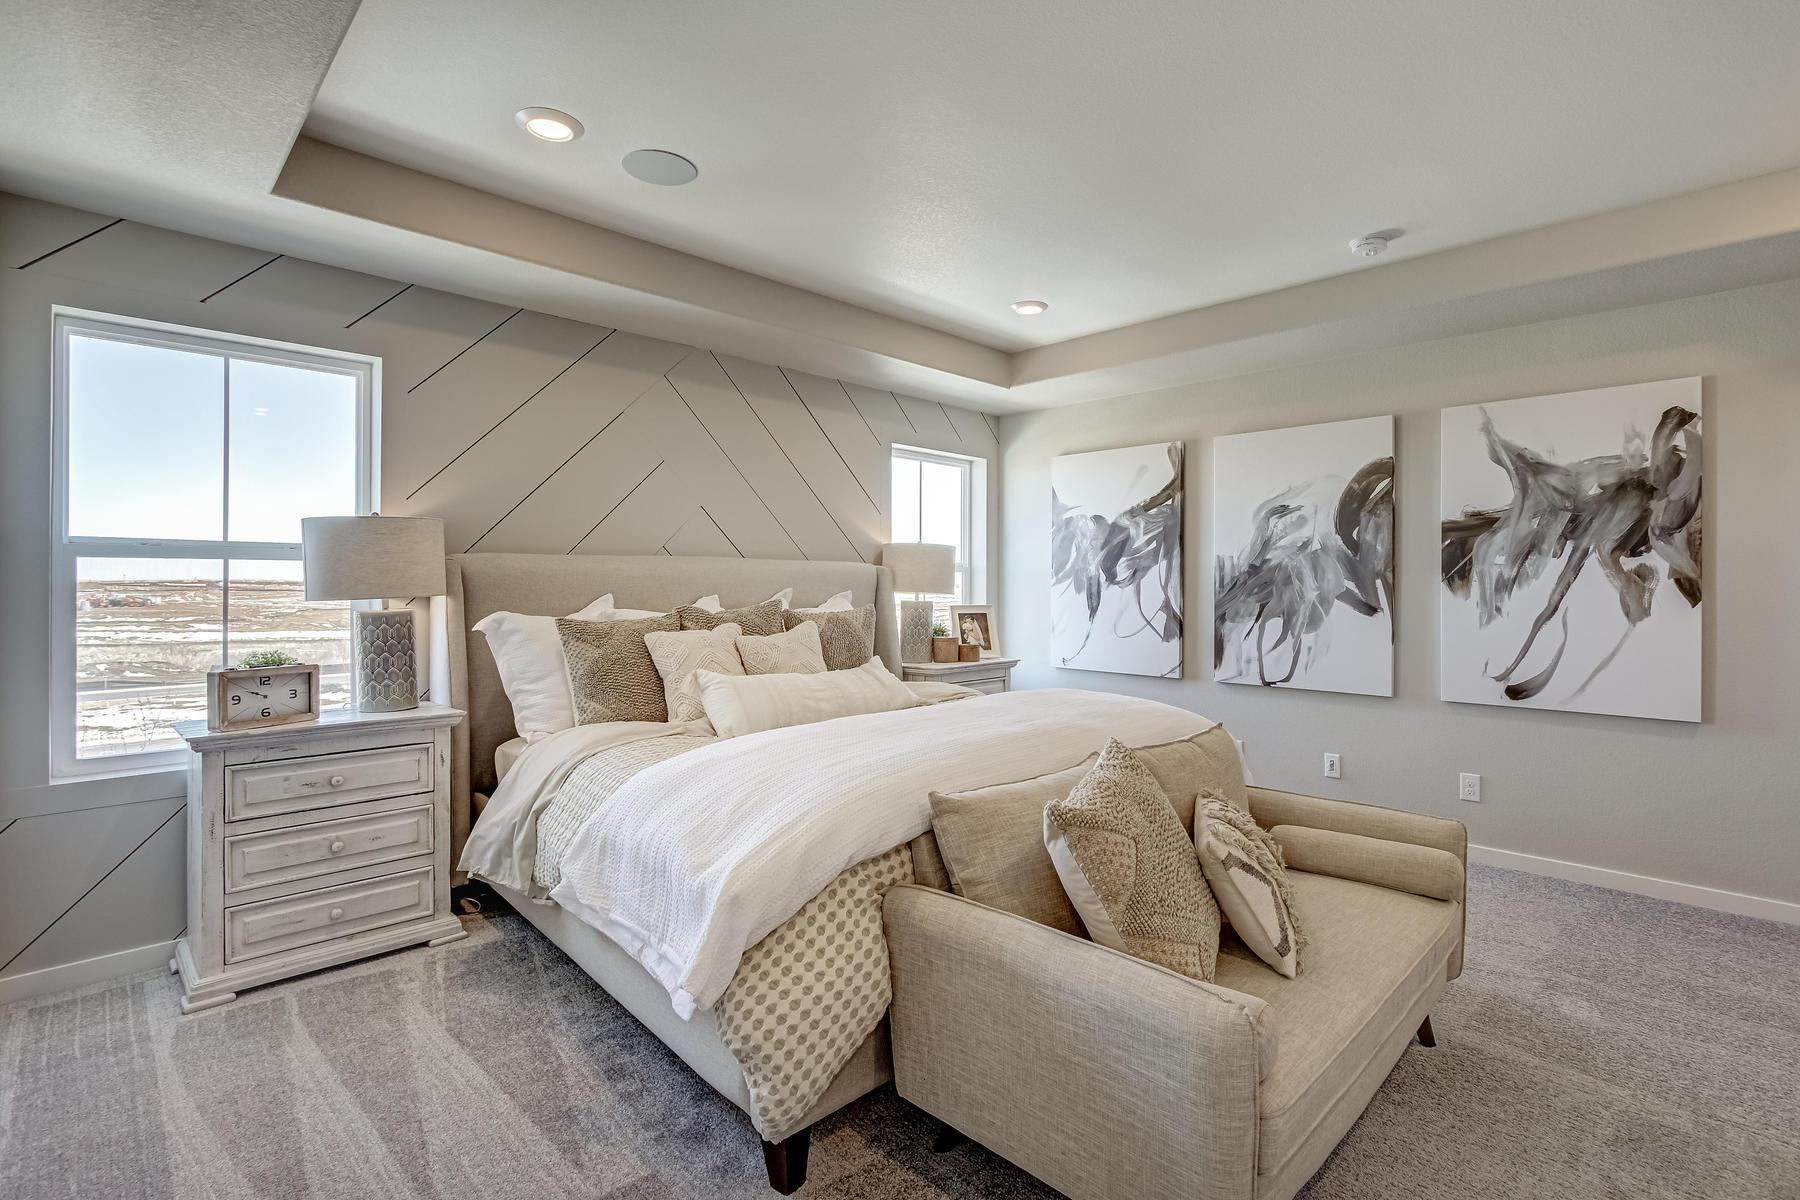 Bedroom featured in the  Branson  By Oakwood Homes Colorado in Denver, CO